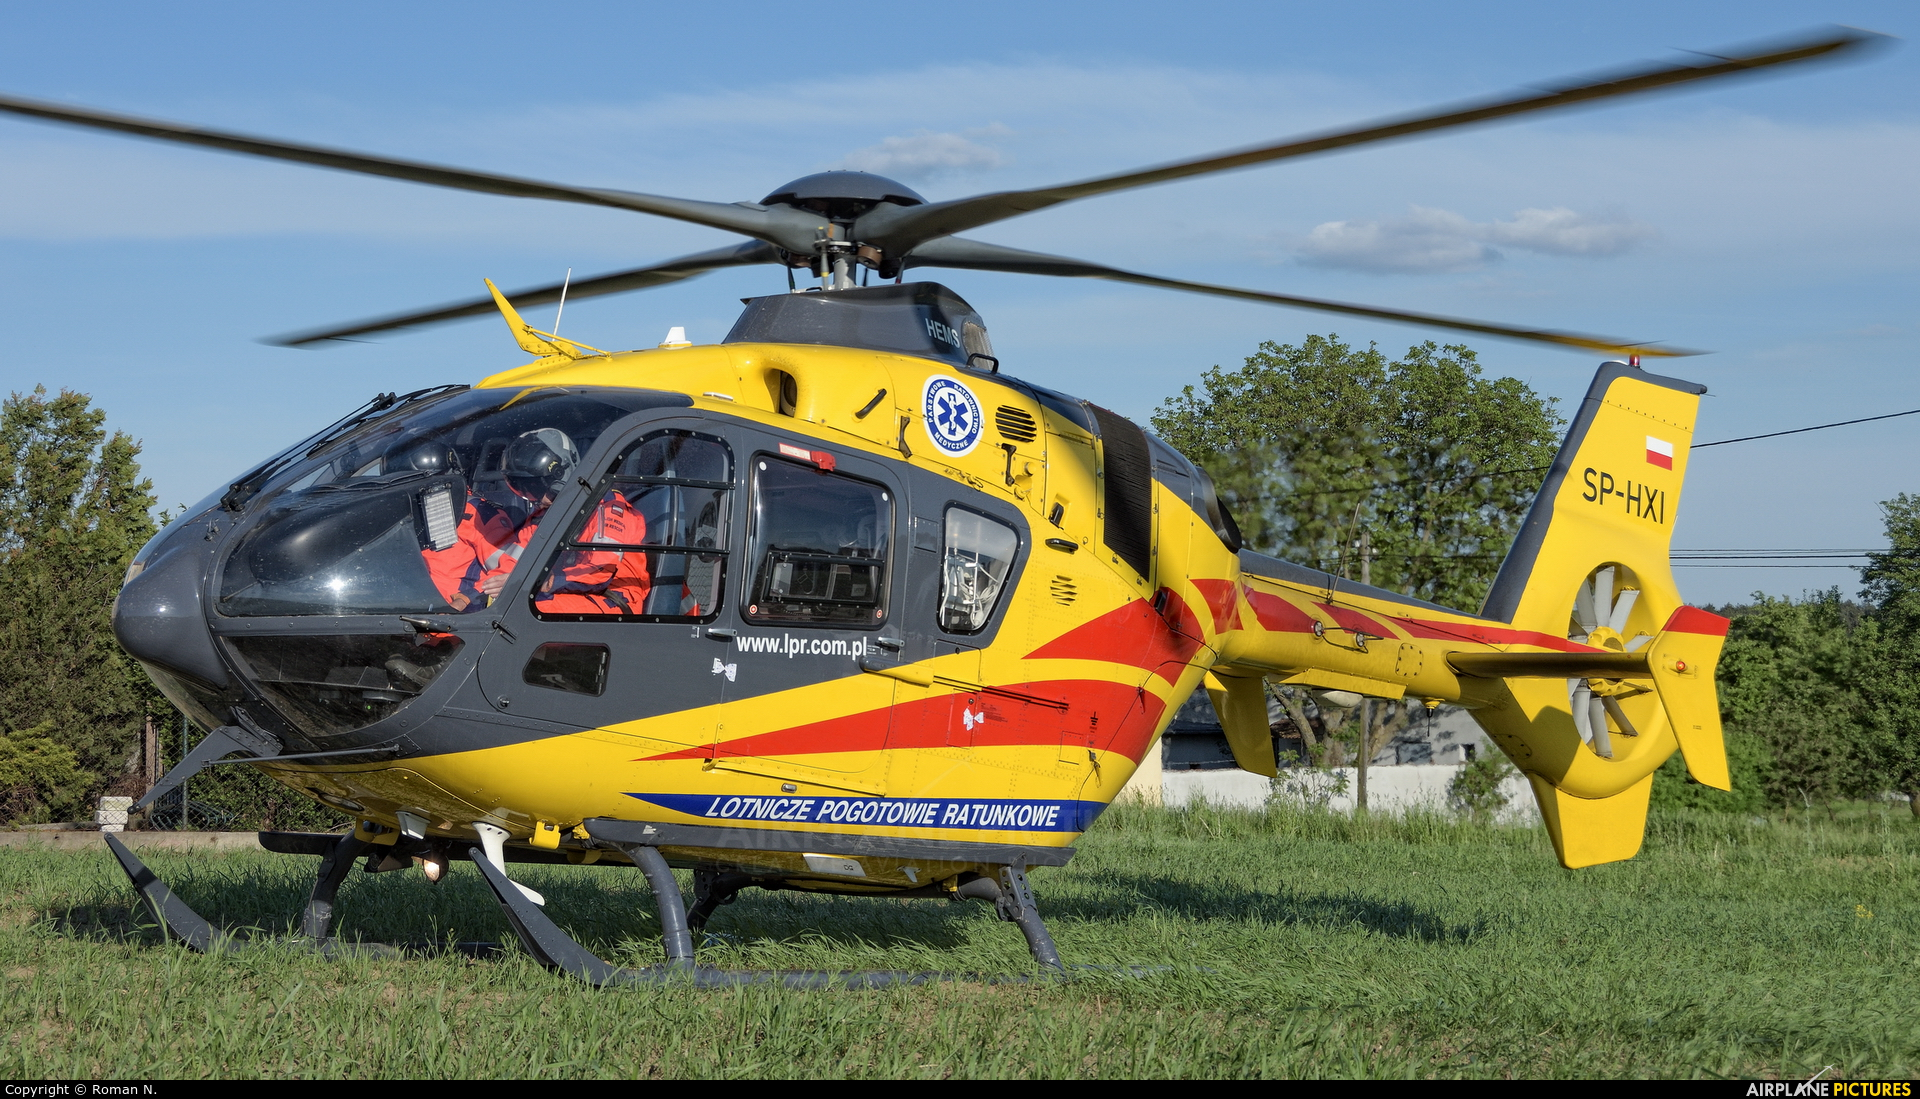 Polish Medical Air Rescue - Lotnicze Pogotowie Ratunkowe SP-HXI aircraft at Off Airport - Poland